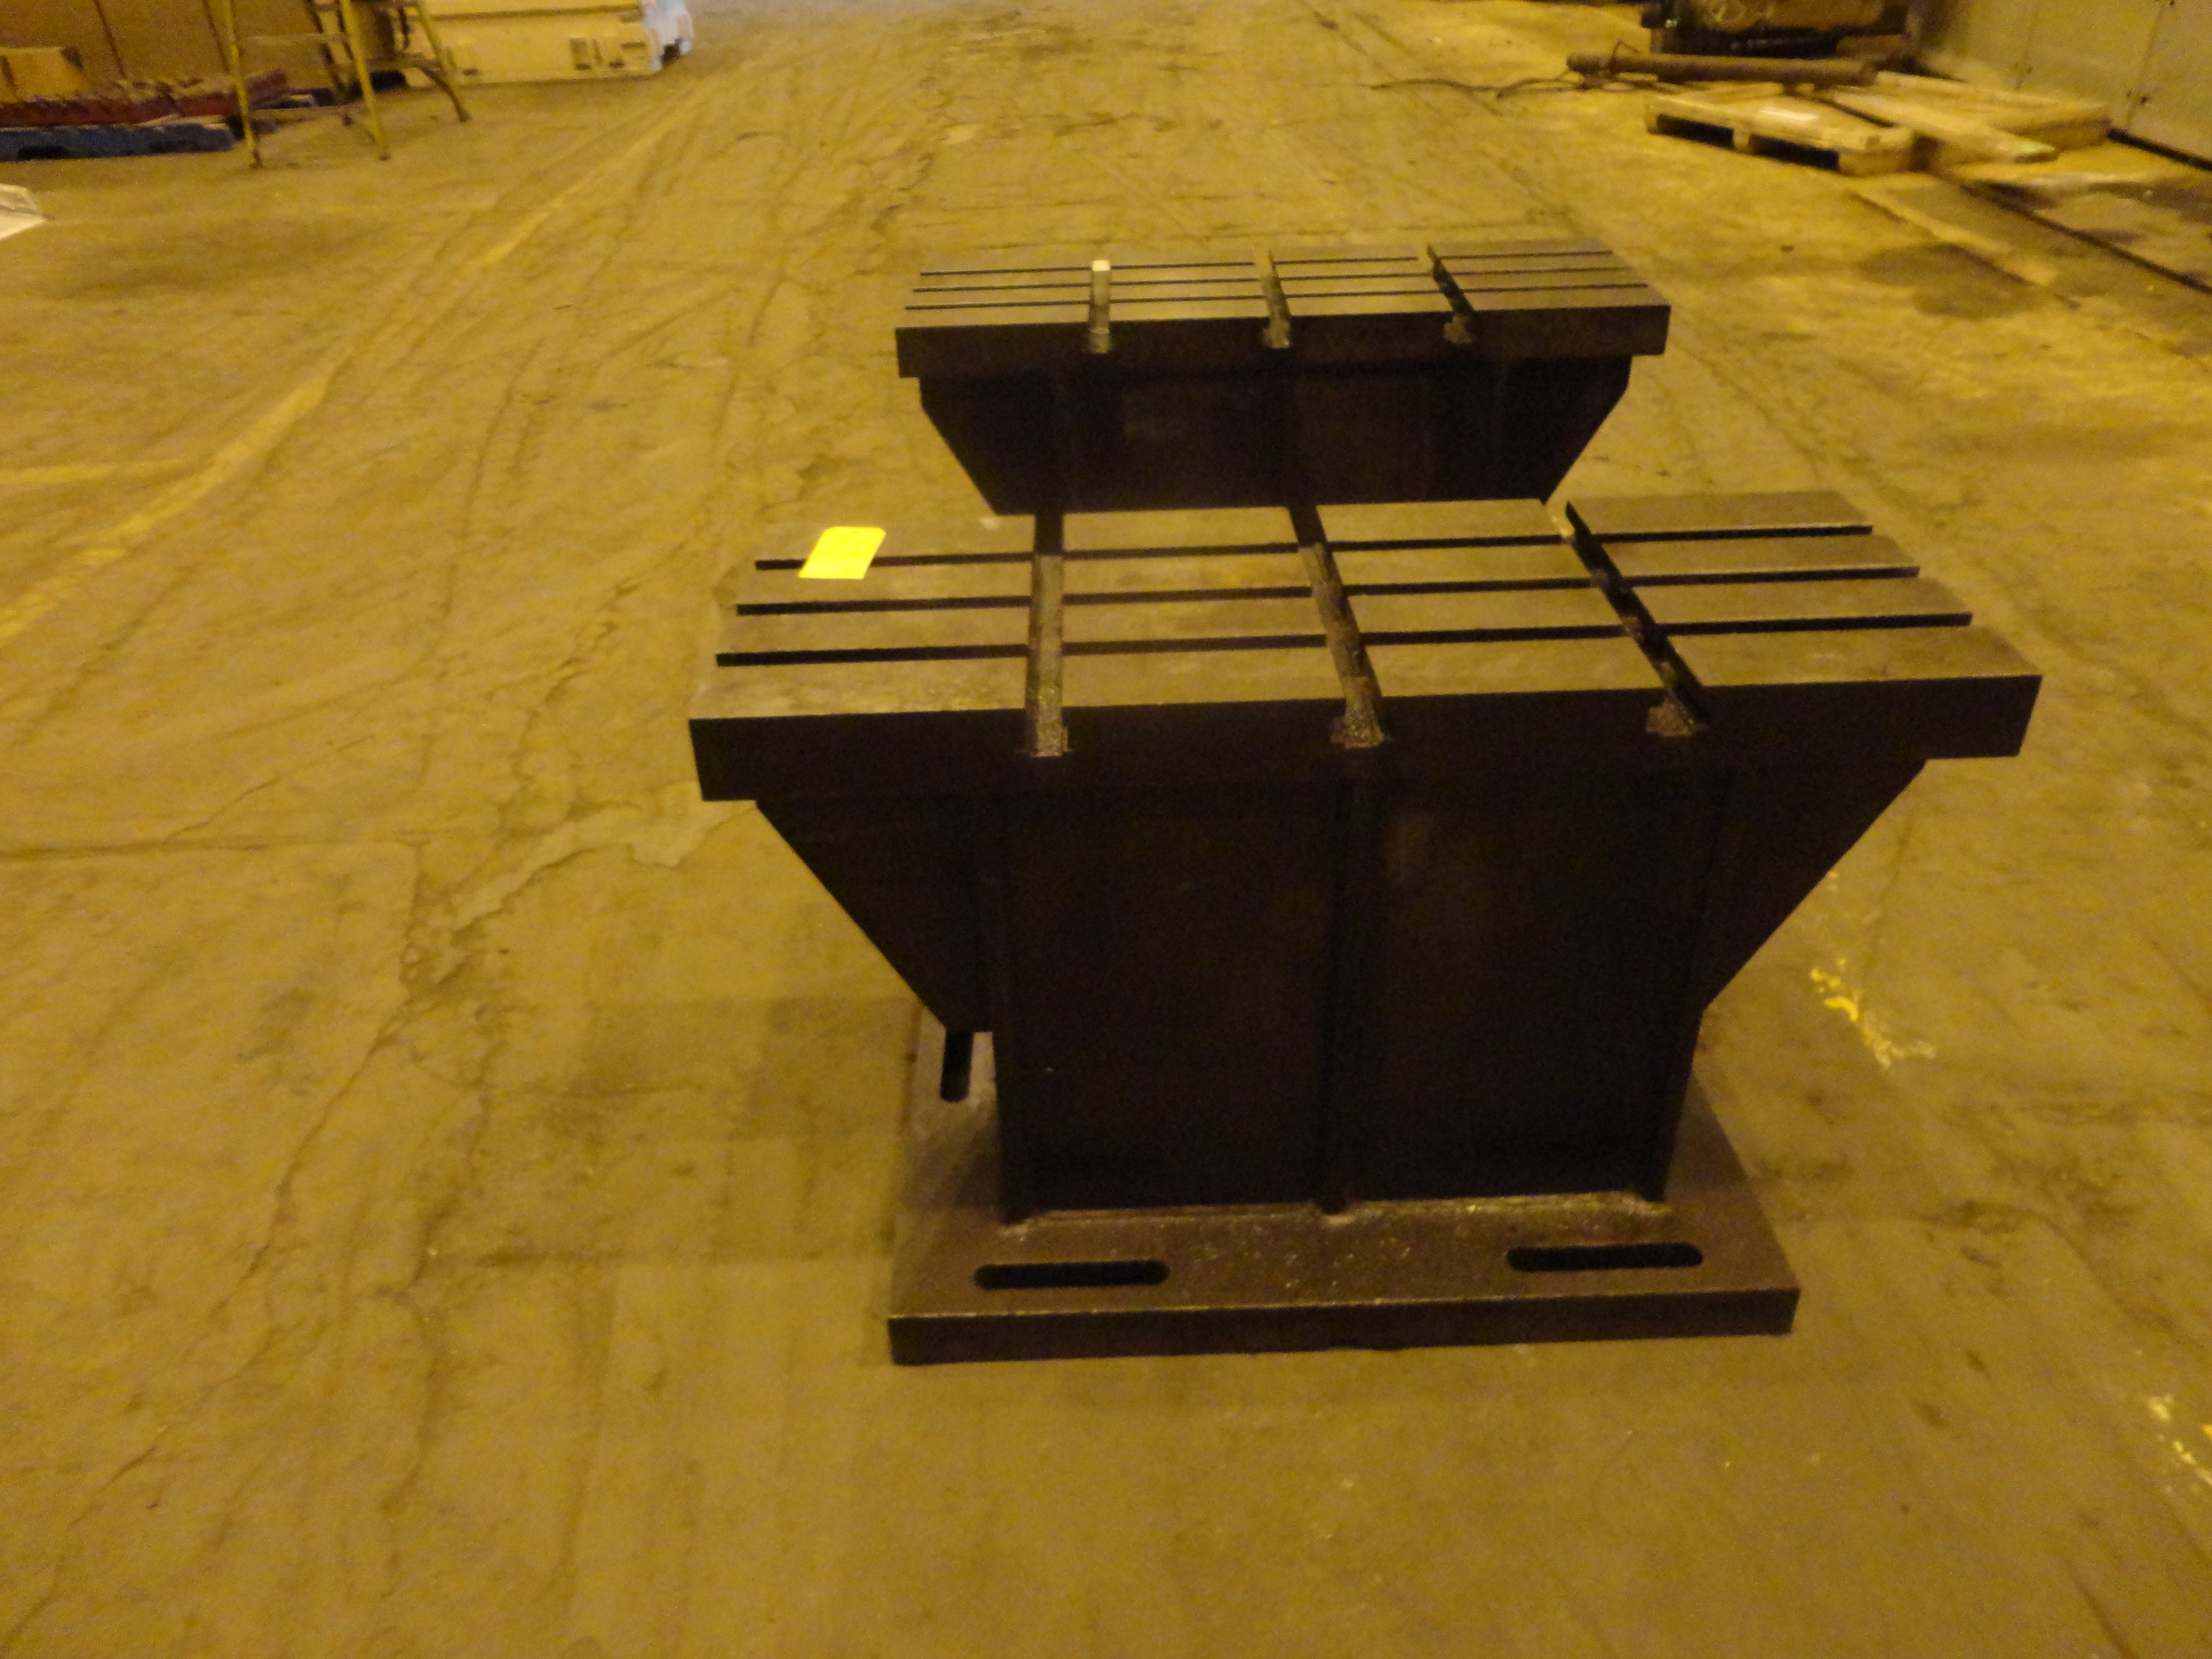 """Set of 2 T-Slotted Riser Blocks Knee Hold Down Plates 42""""L x 16"""" W x 25""""H - Image 3 of 13"""